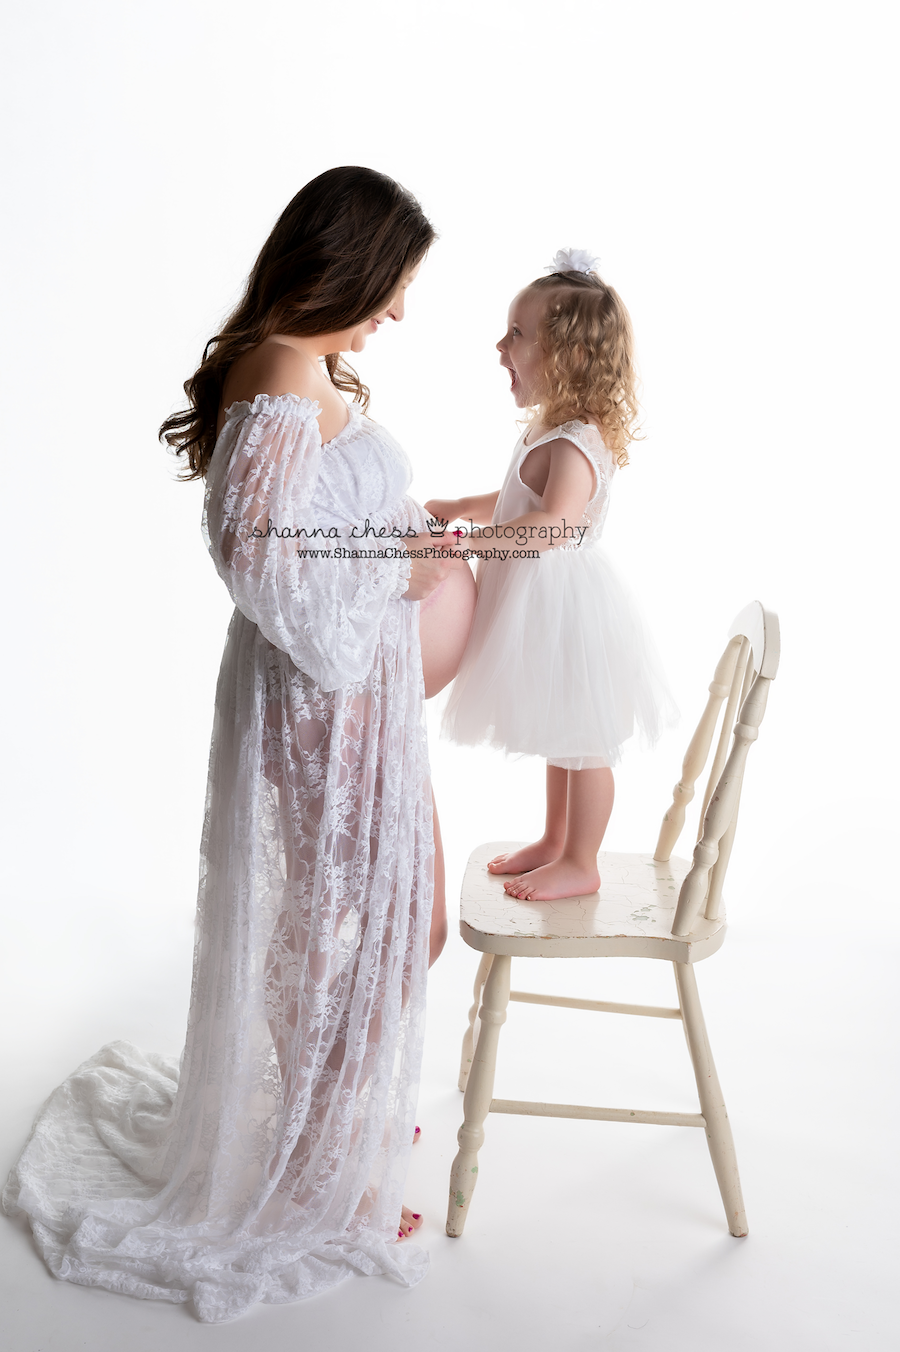 eugene oregon maternity photographer with children and family